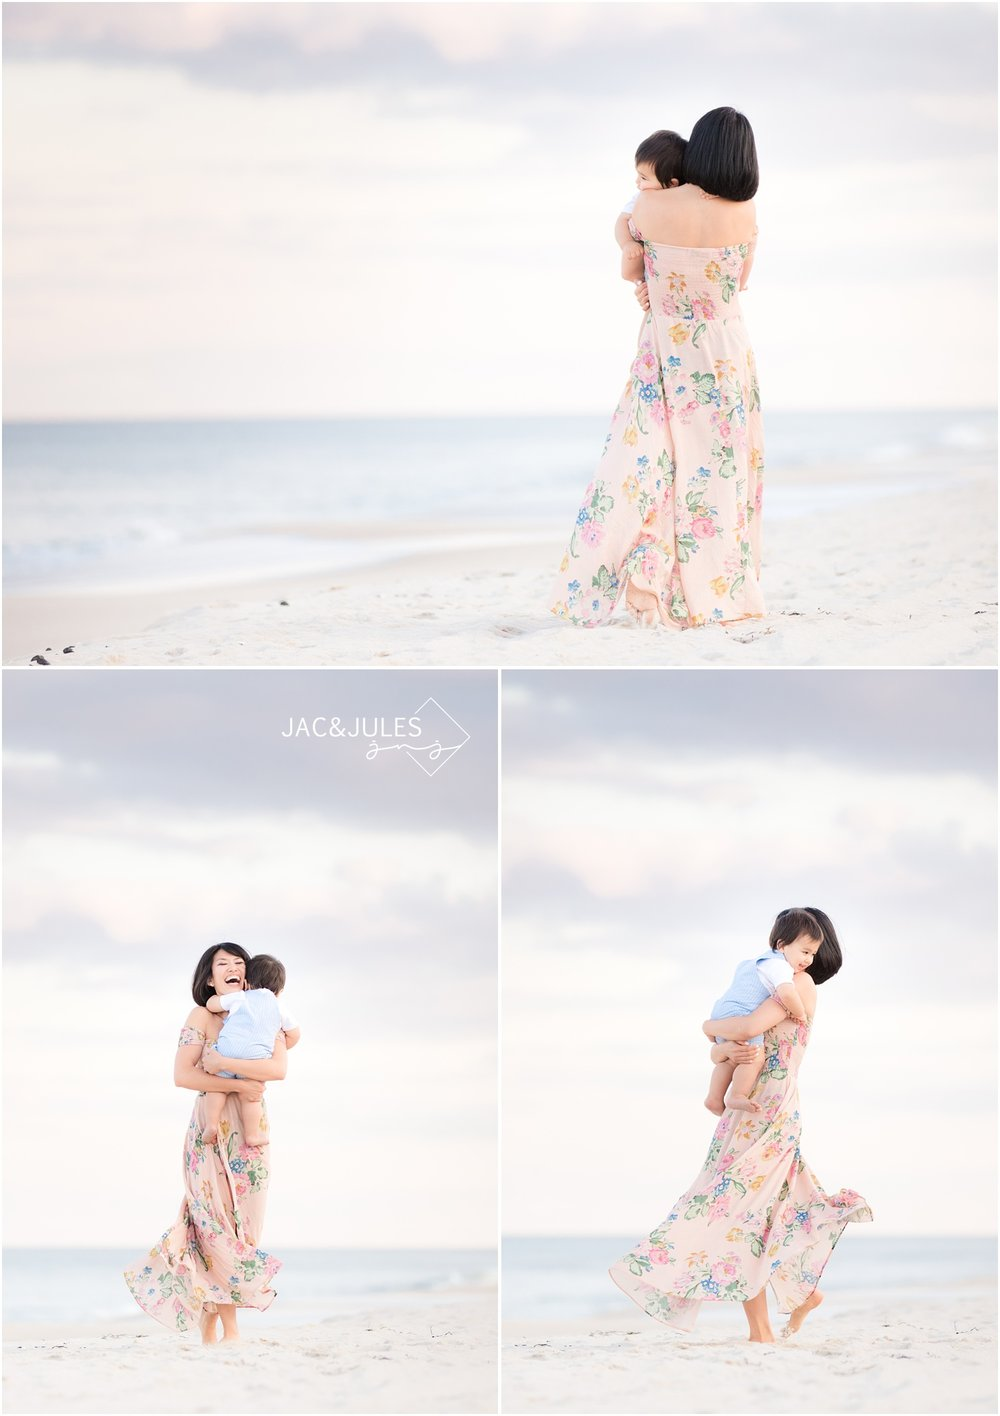 Pretty photos of sweet moment with Mom and son on the beach in Mantoloking, NJ.